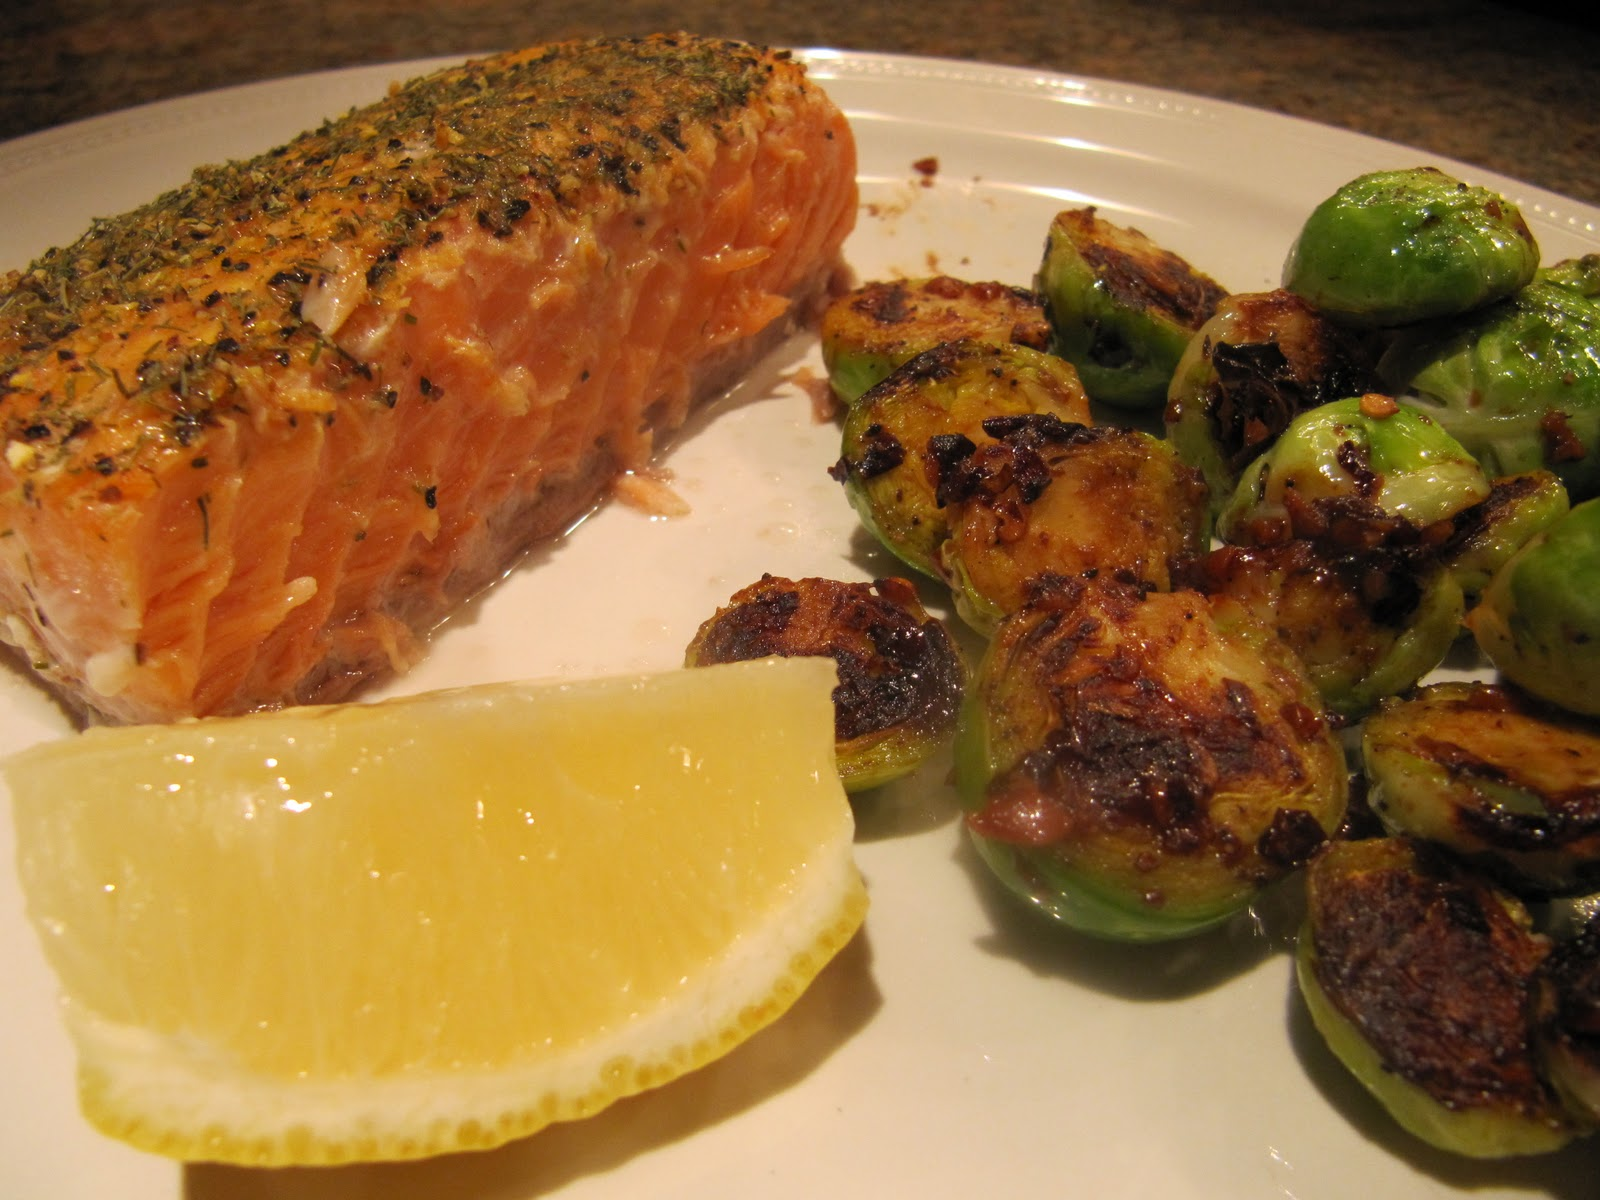 ... : Oven-Baked Salmon and Brussels Sprouts with Black Bean Garlic Sauce